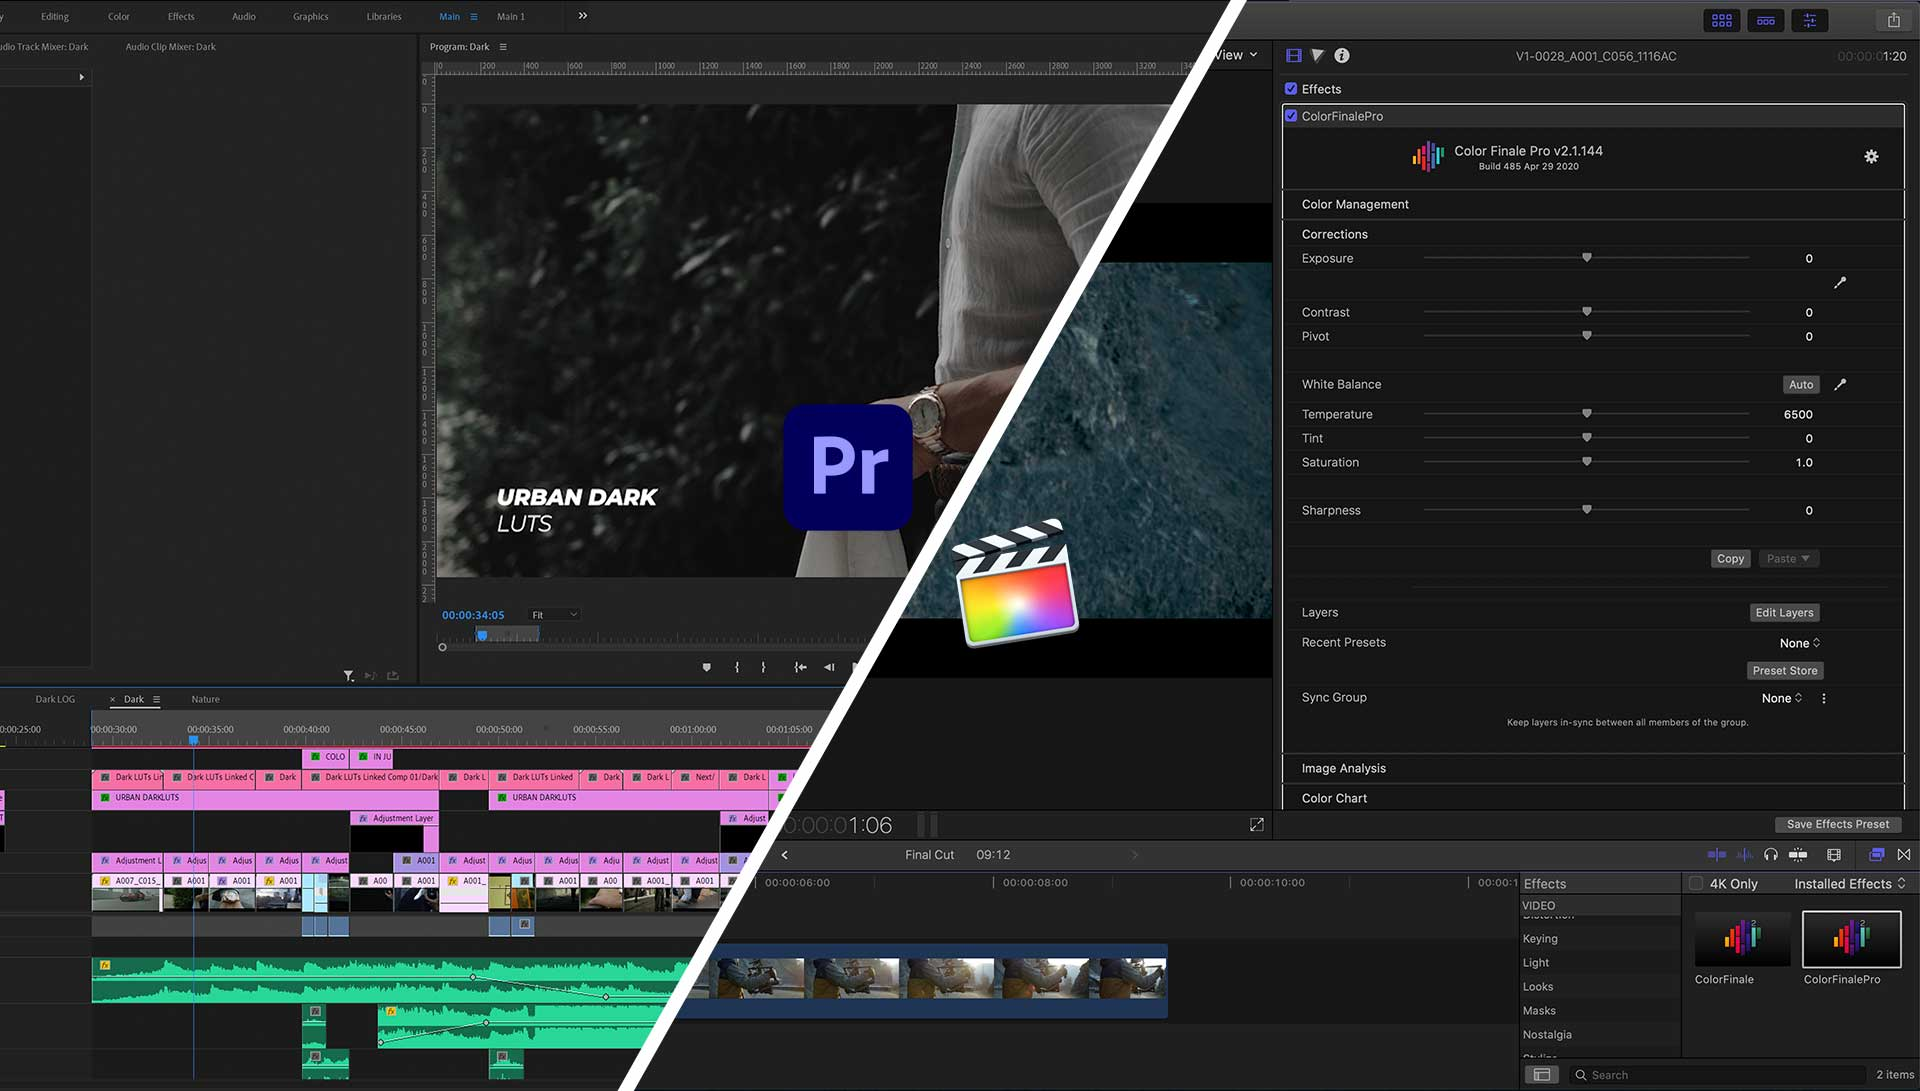 premiere pro vs. final cut